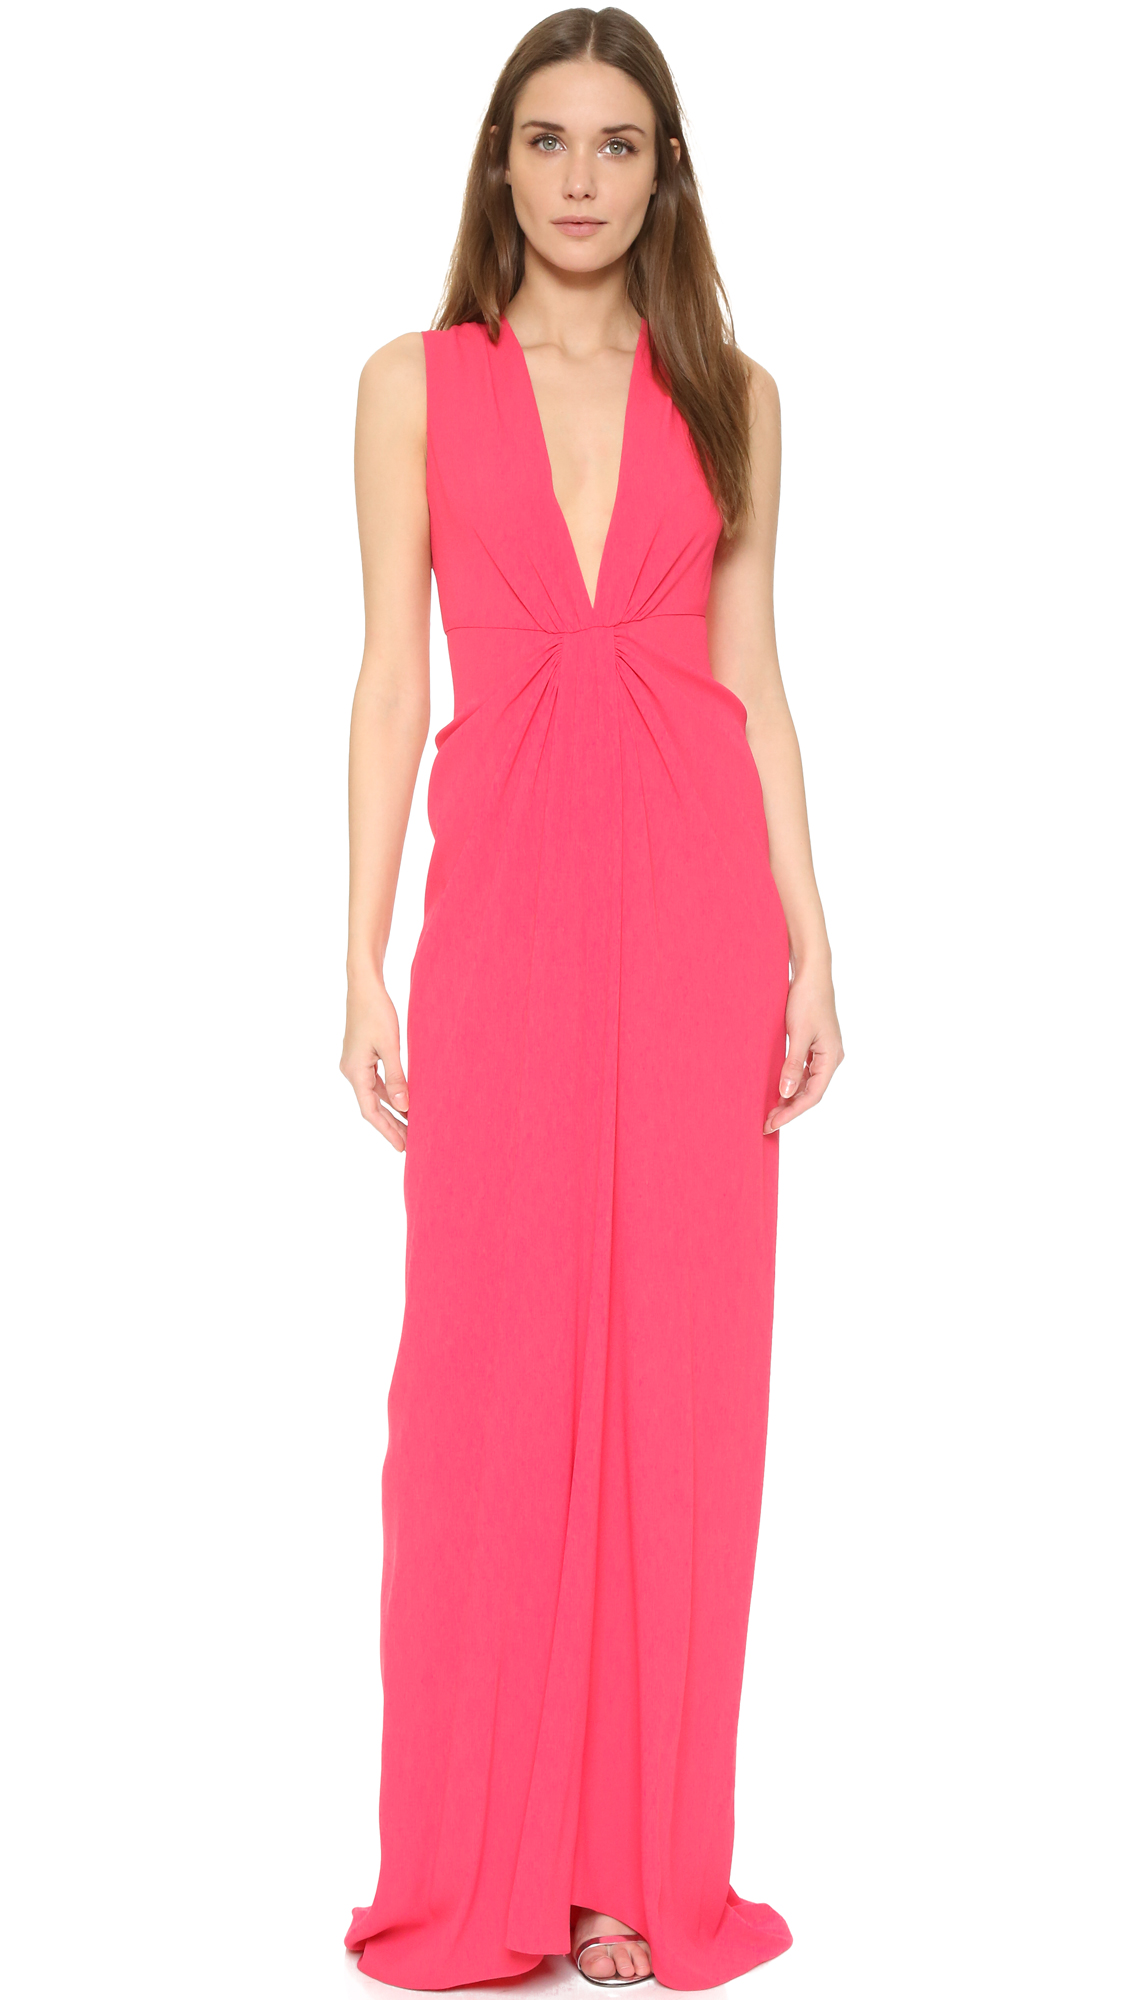 Thakoon Plunge Front Gown - Pink at Shopbop